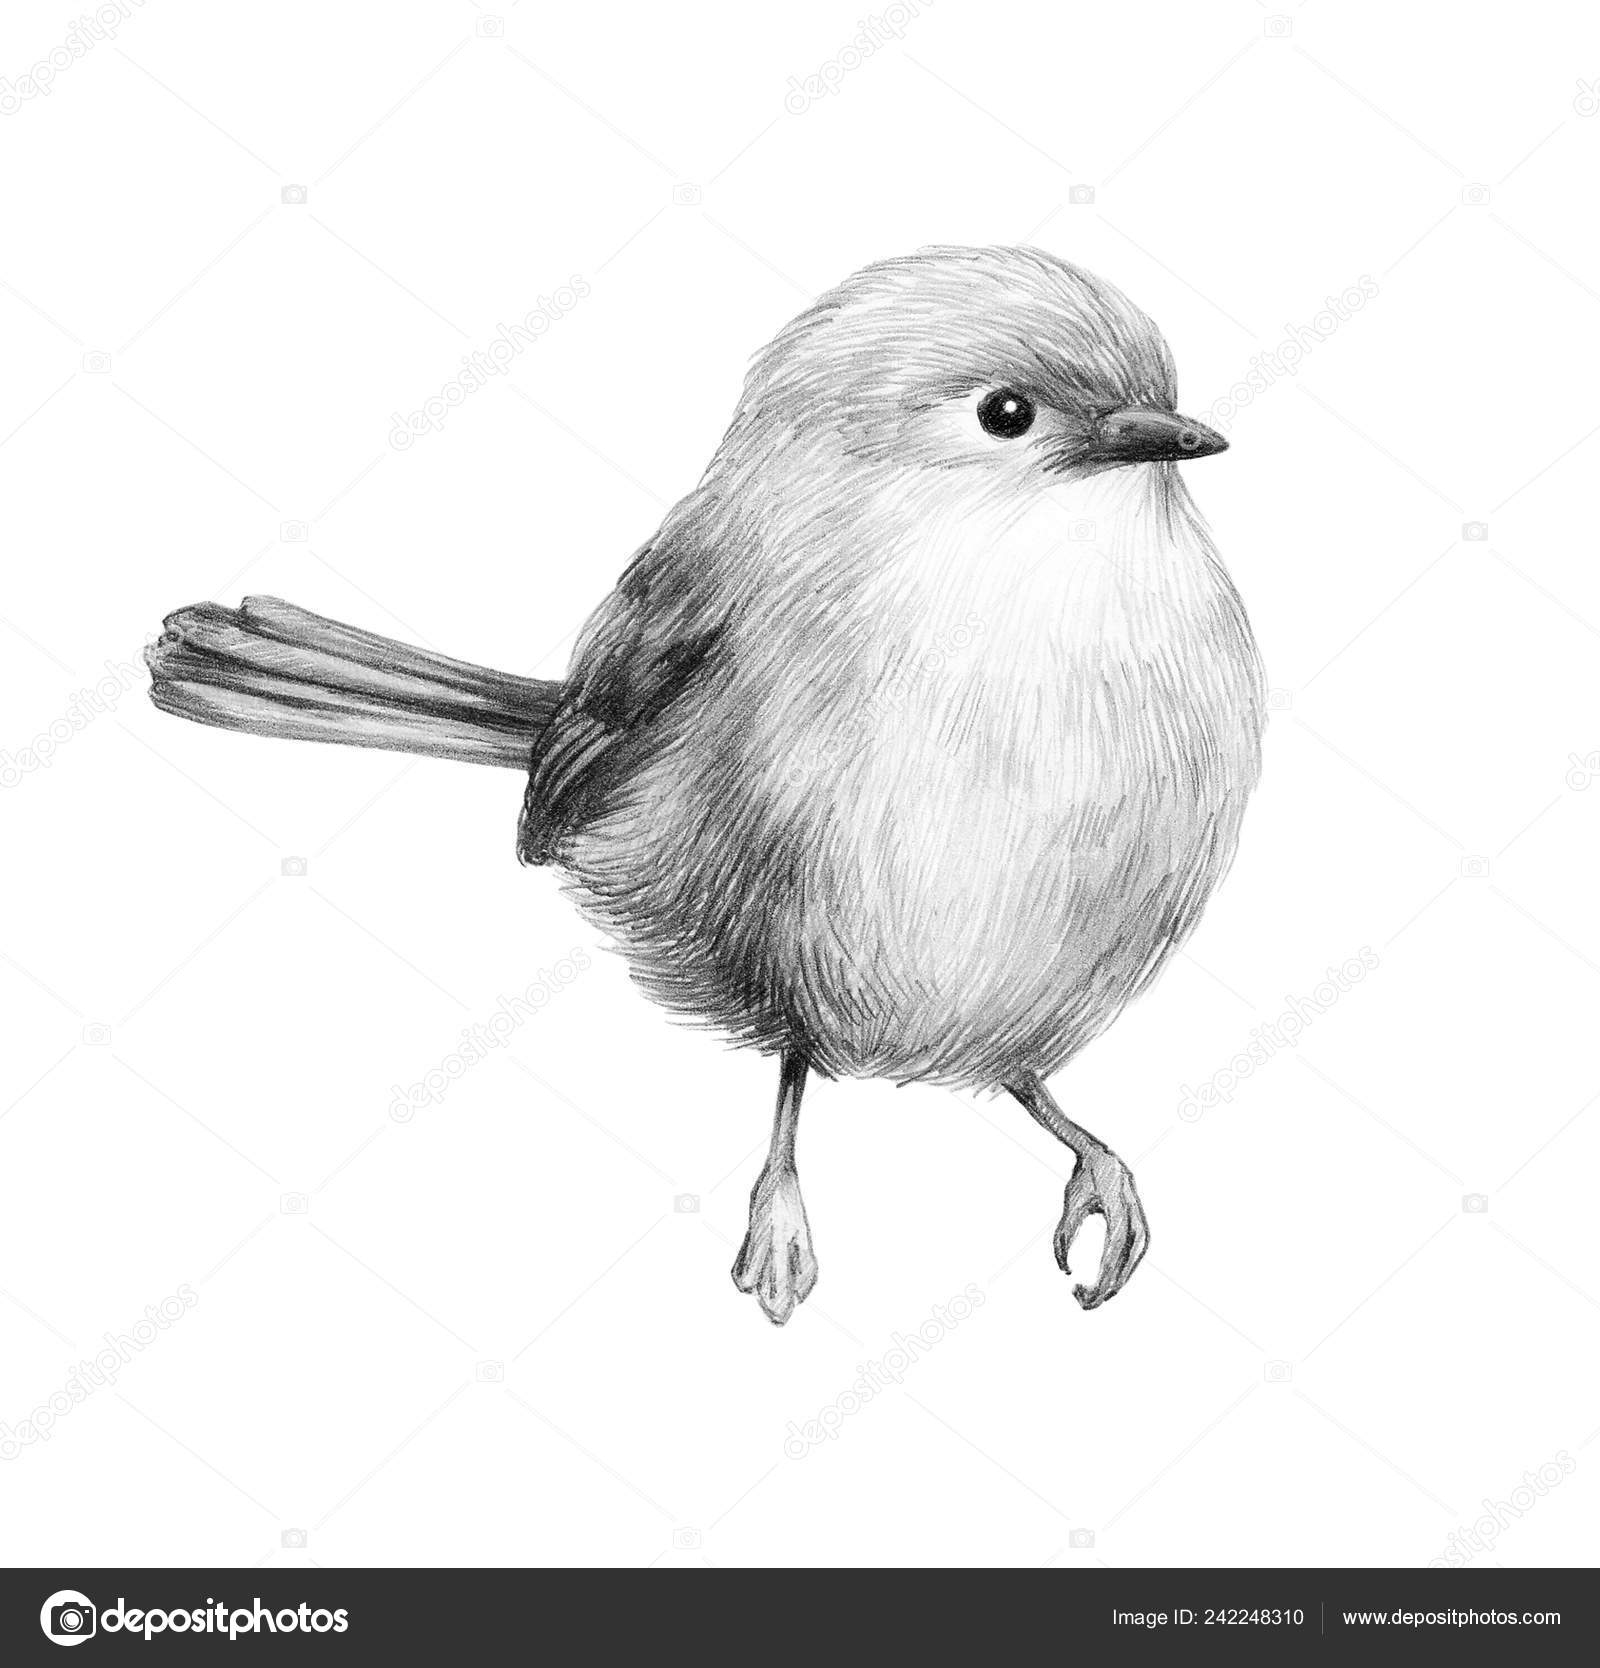 Sketch bird graphics cute little bird pencil drawing print illustration stock photo